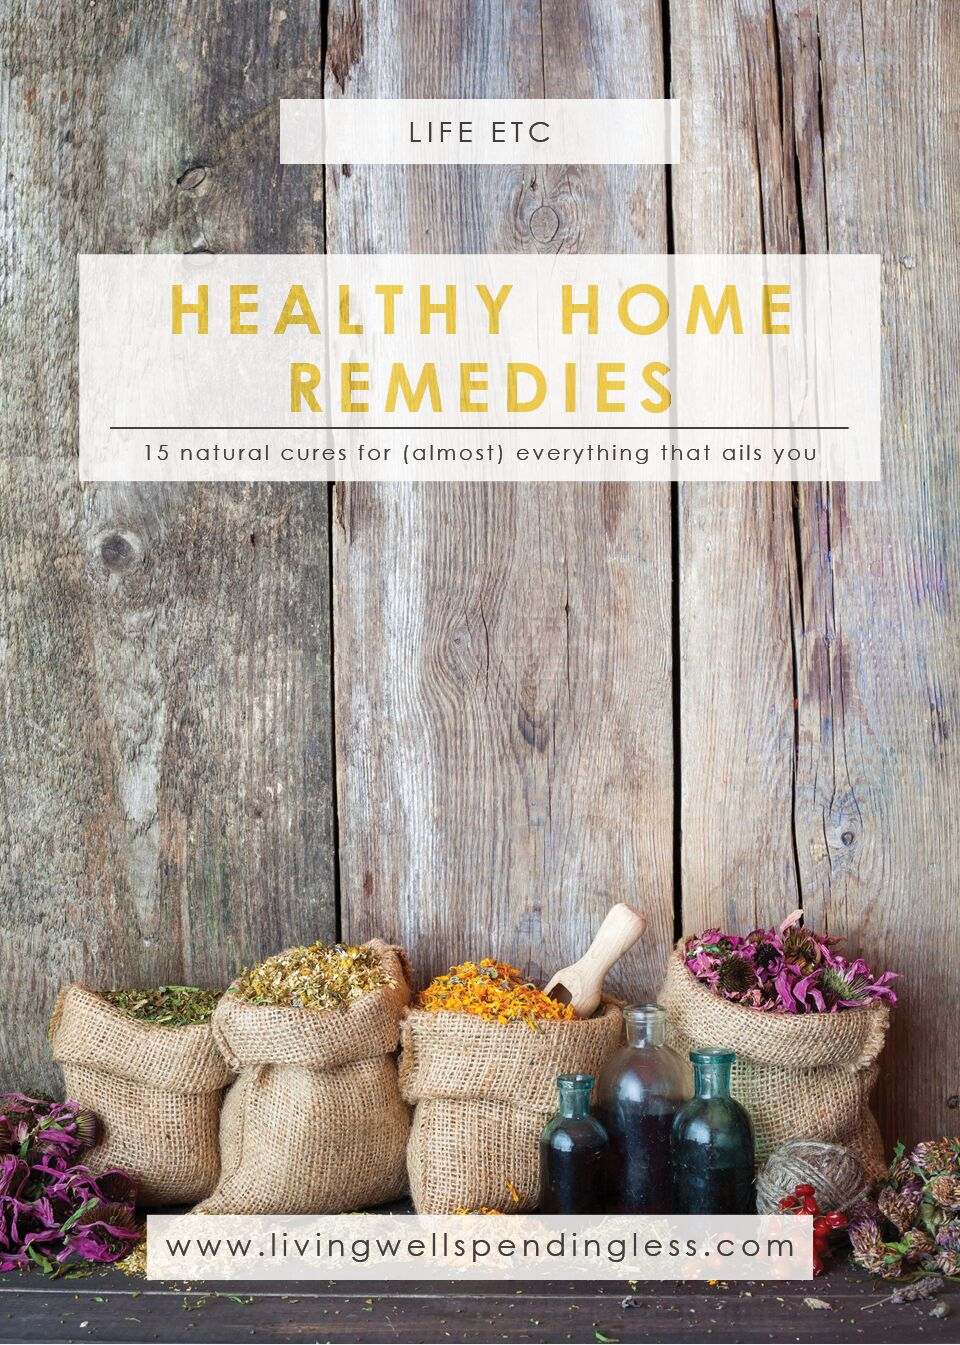 Healthy Home Remedies | Health & Wellness | Natural Home Remedies